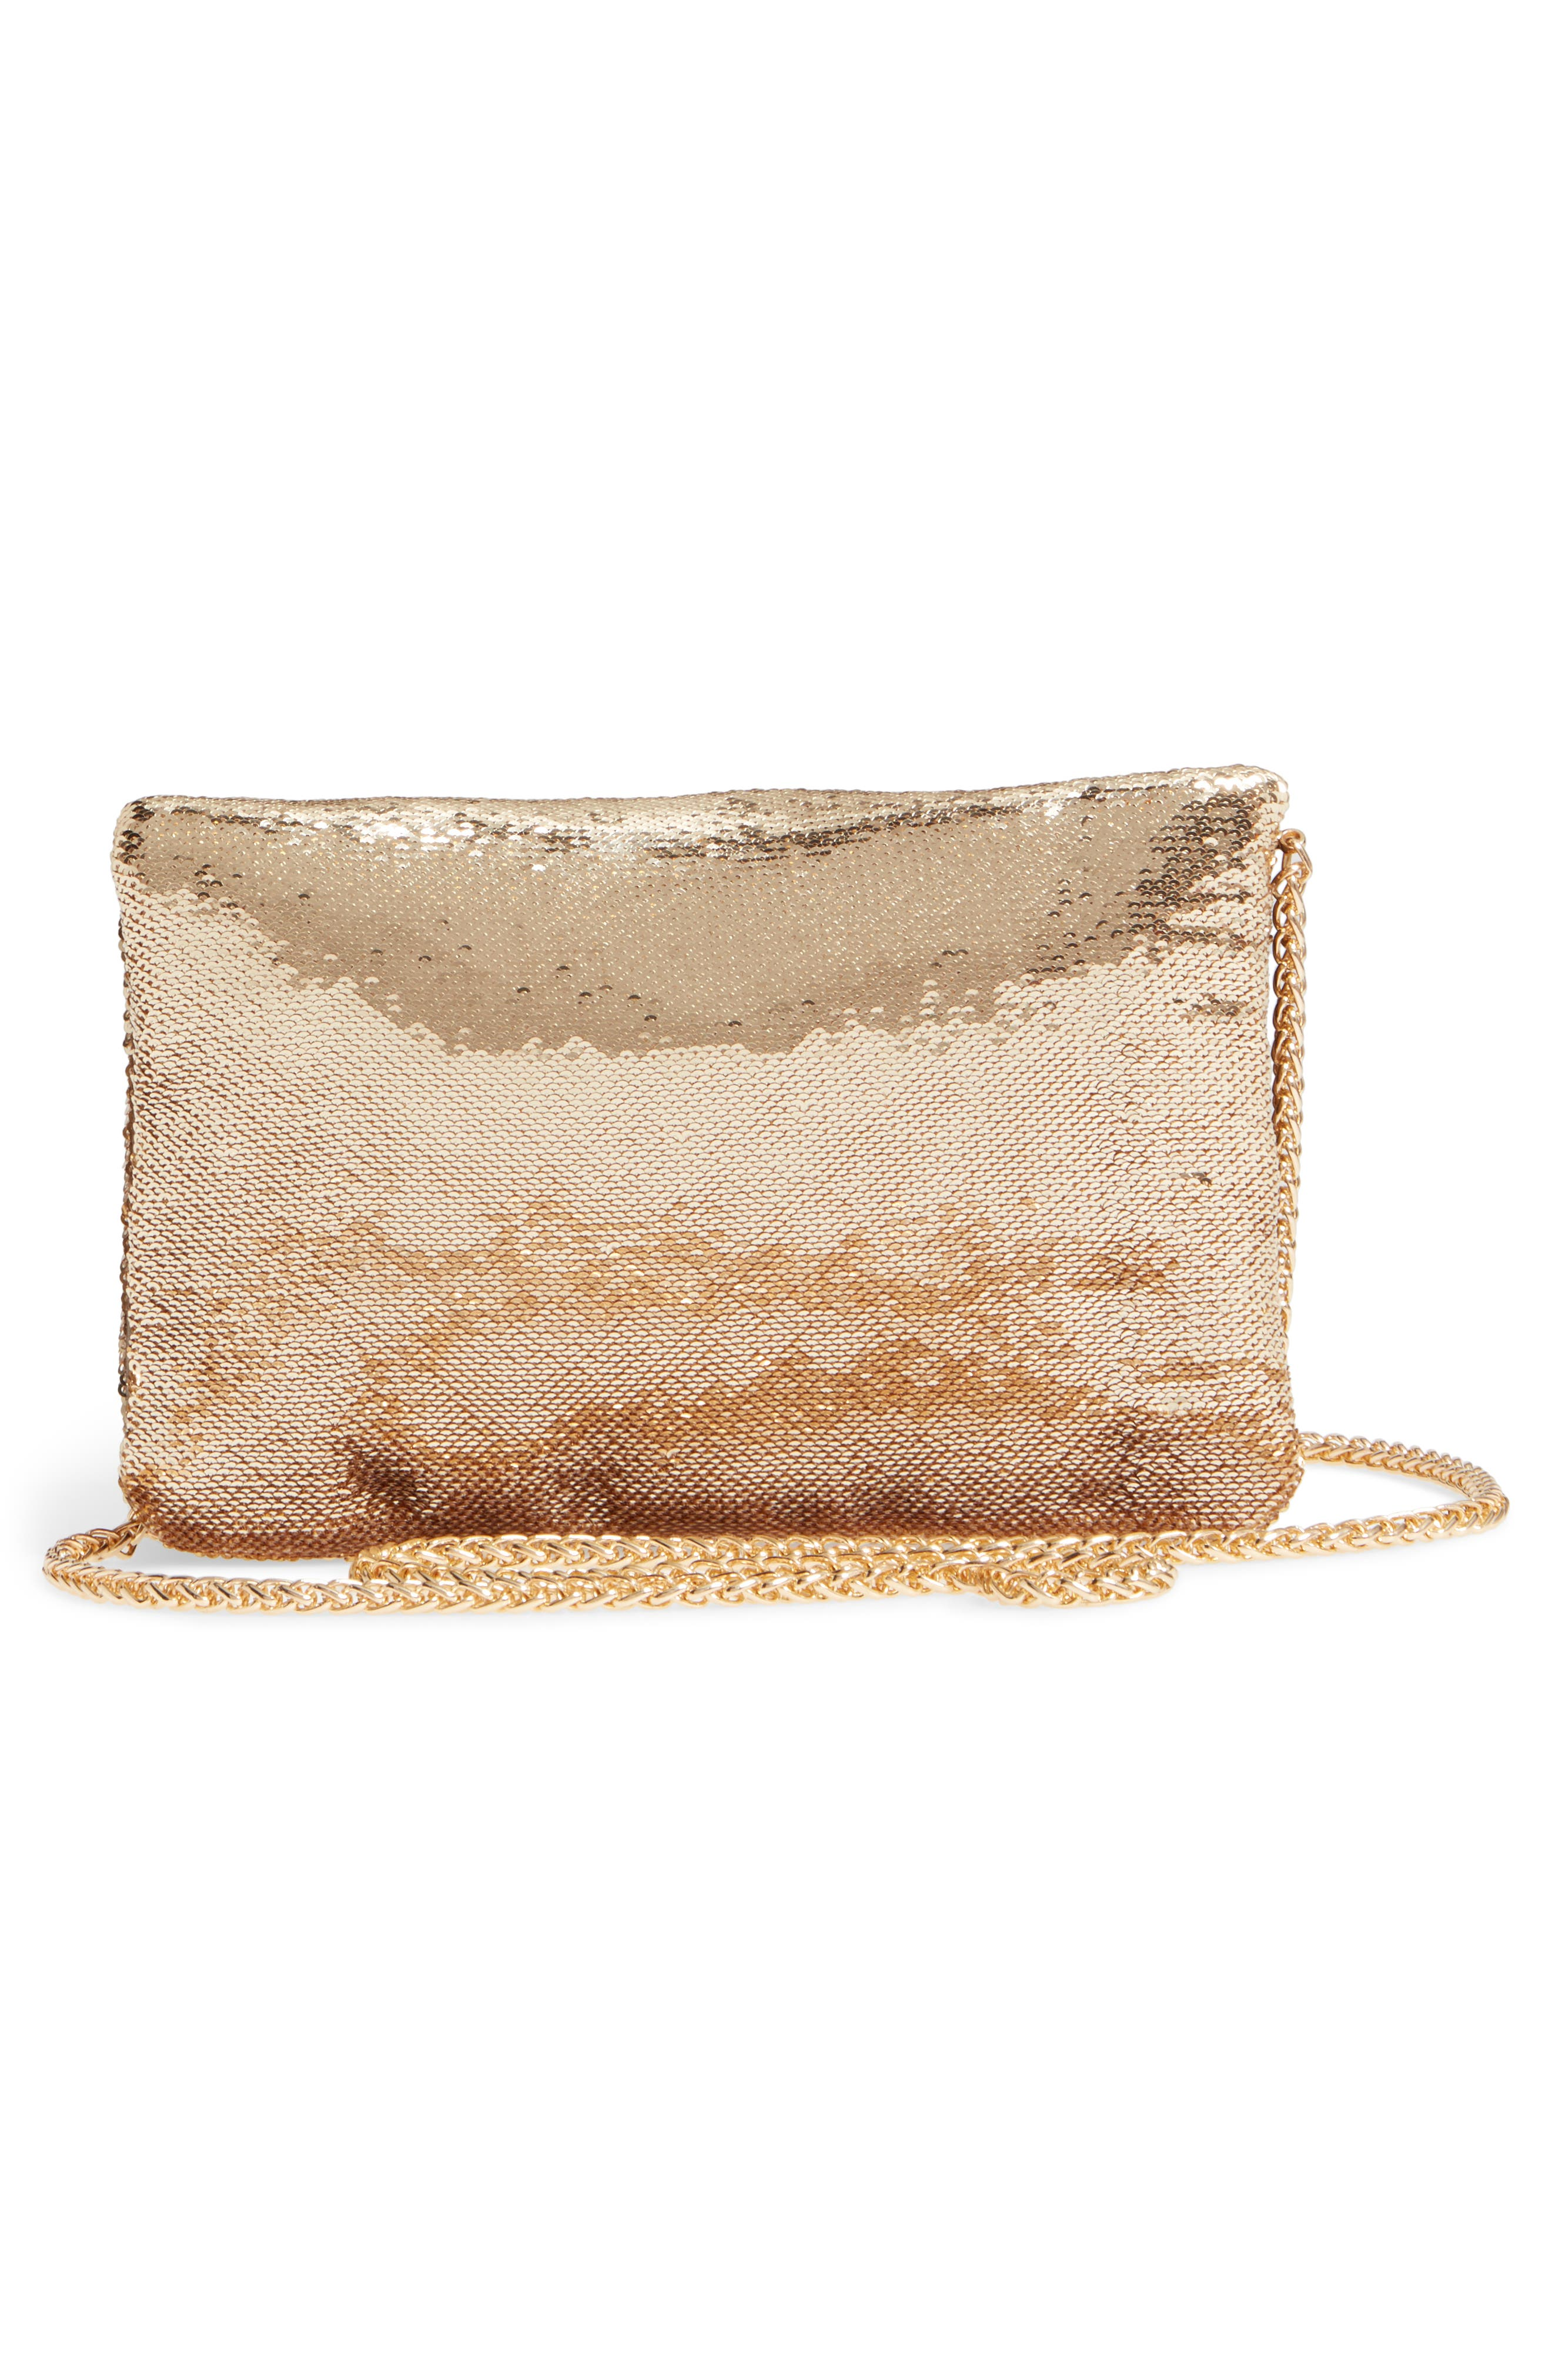 Alternate Image 3  - Street Level Sequin Clutch